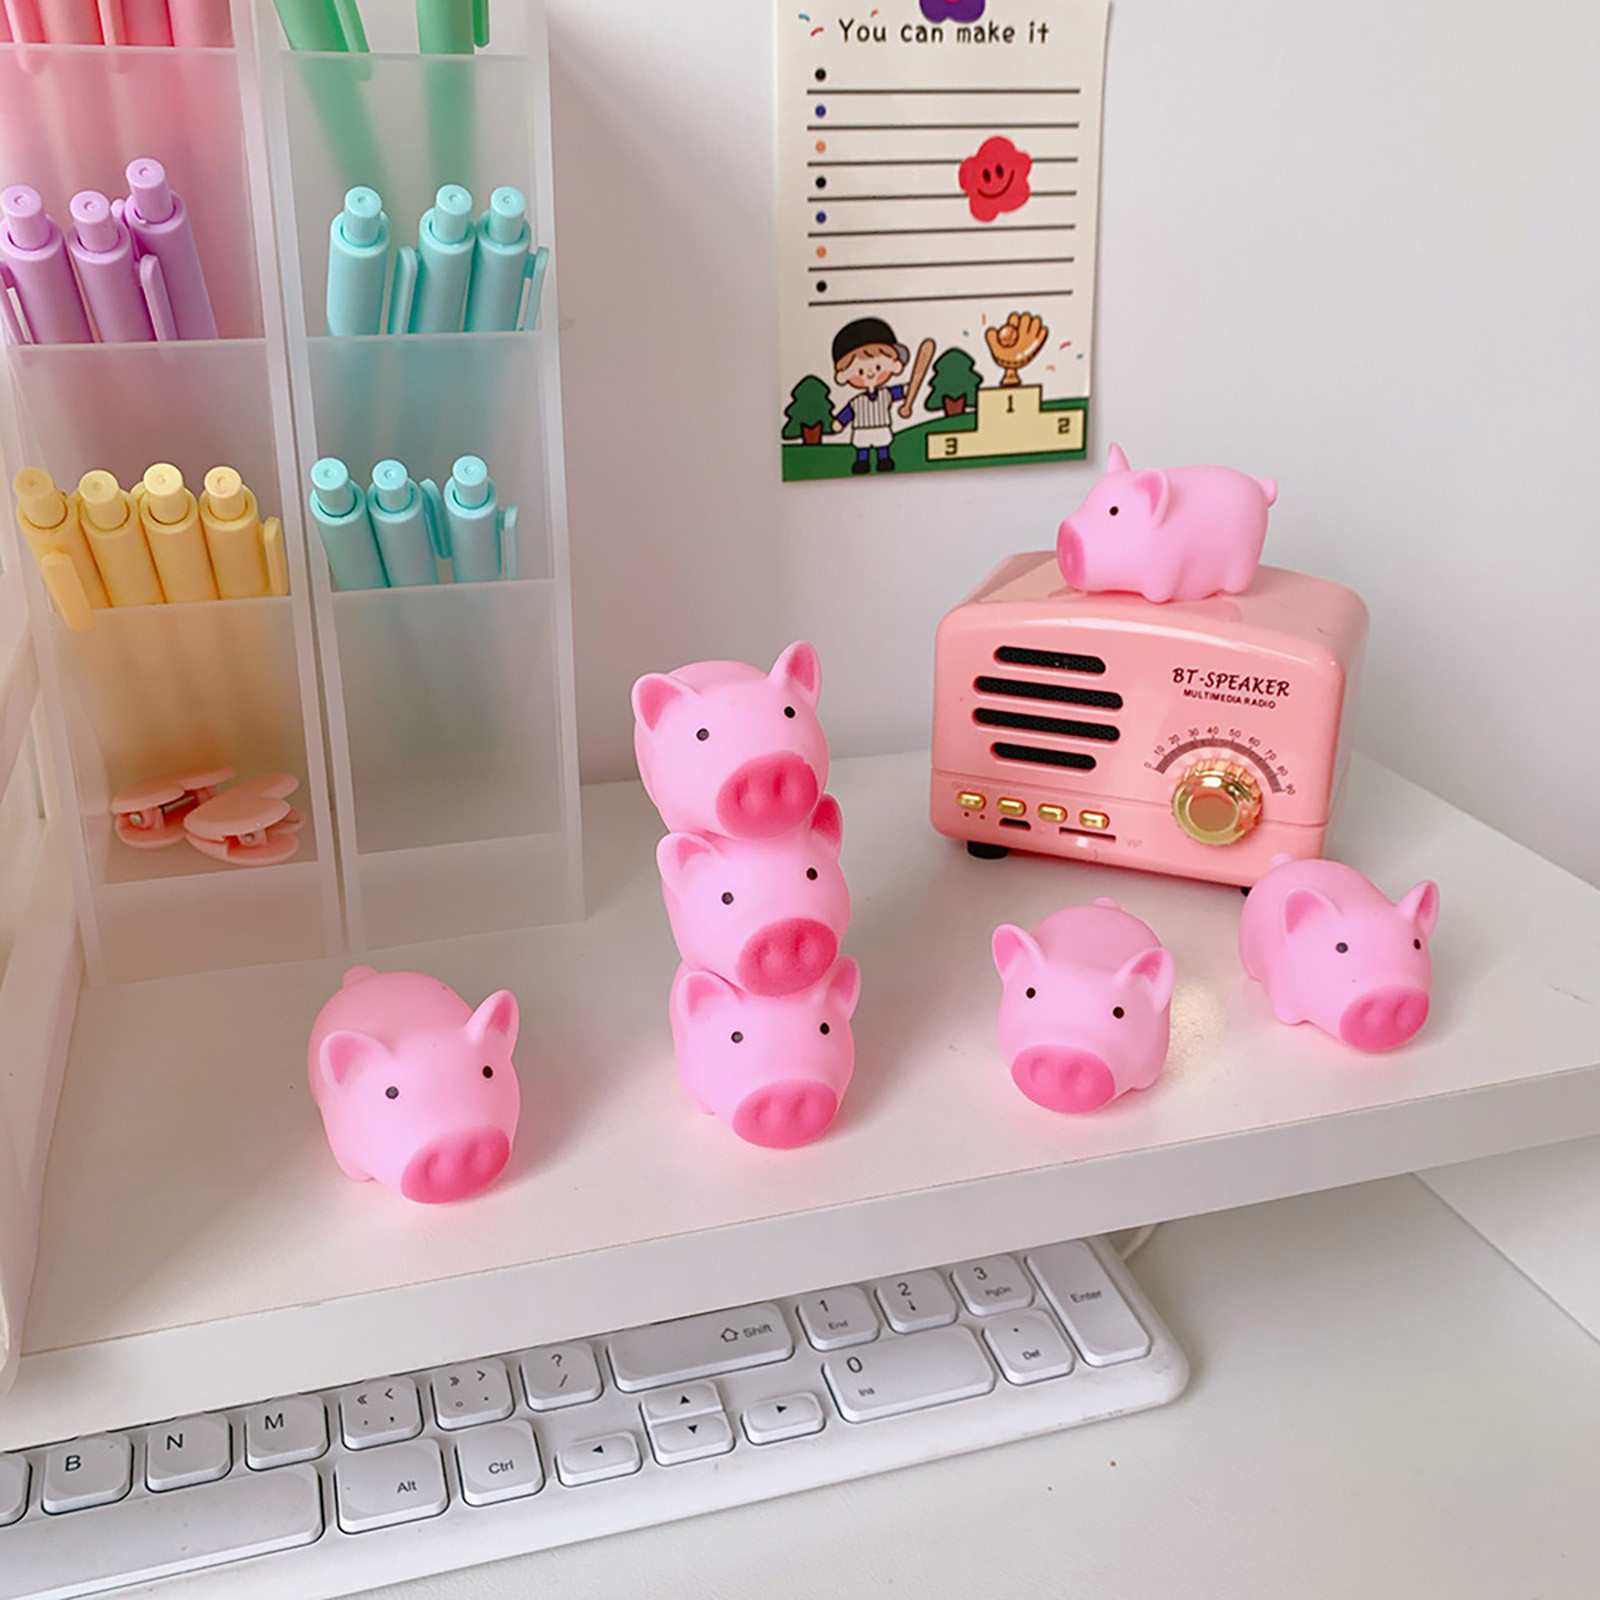 Snailhouse New Cartoon Soft Cute Pink Pig Toy Pig Cute Pink Toy To Vent Children Bath Pig Pinching Joys Stress Vent Toy#4 img2